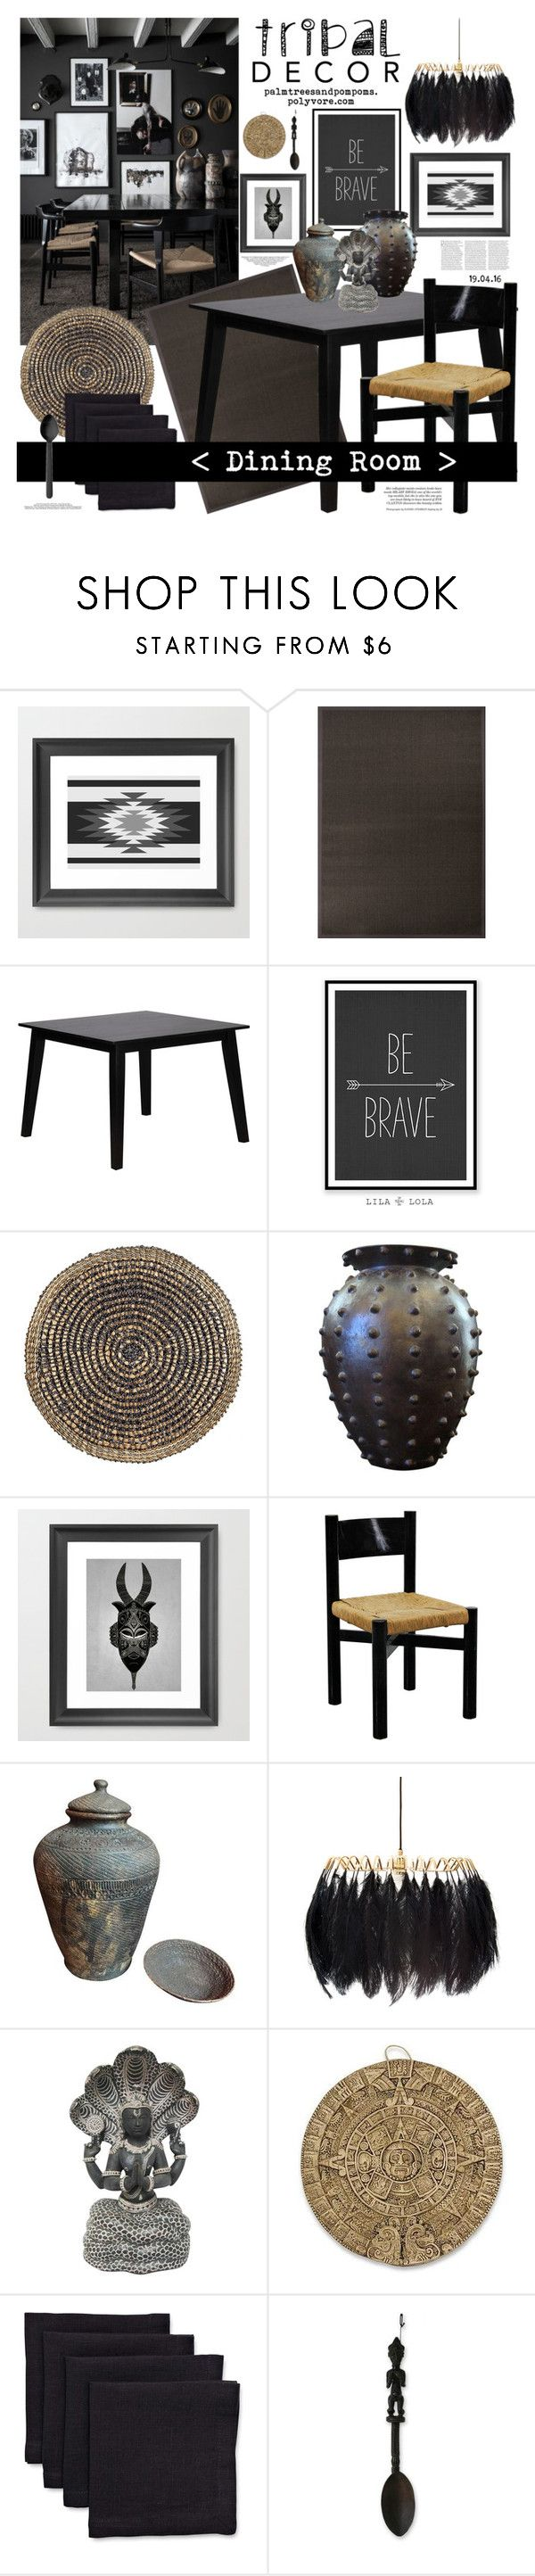 Home decor collage from january 2017 featuring currey company -  Tribal Decor By Palmtreesandpompoms Liked On Polyvore Featuring Interior Interiors Interior